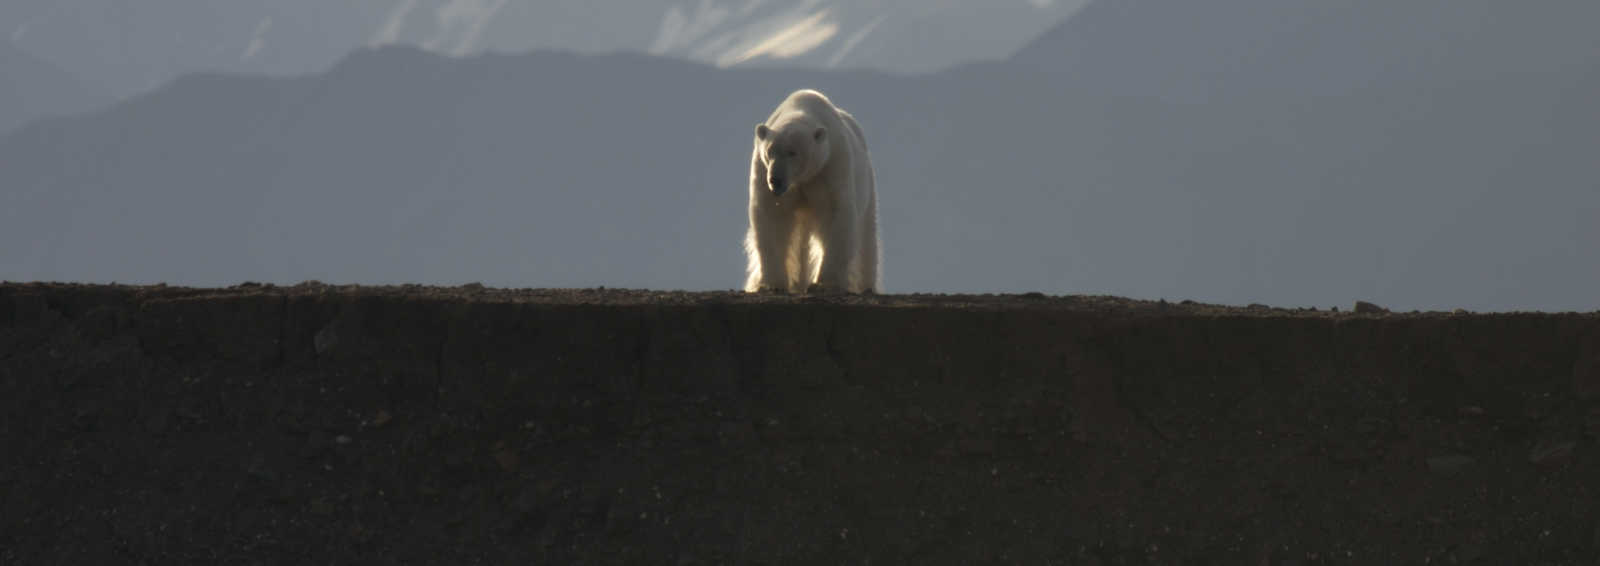 Polar bear, Spitsbergen (Svalbard), Norway